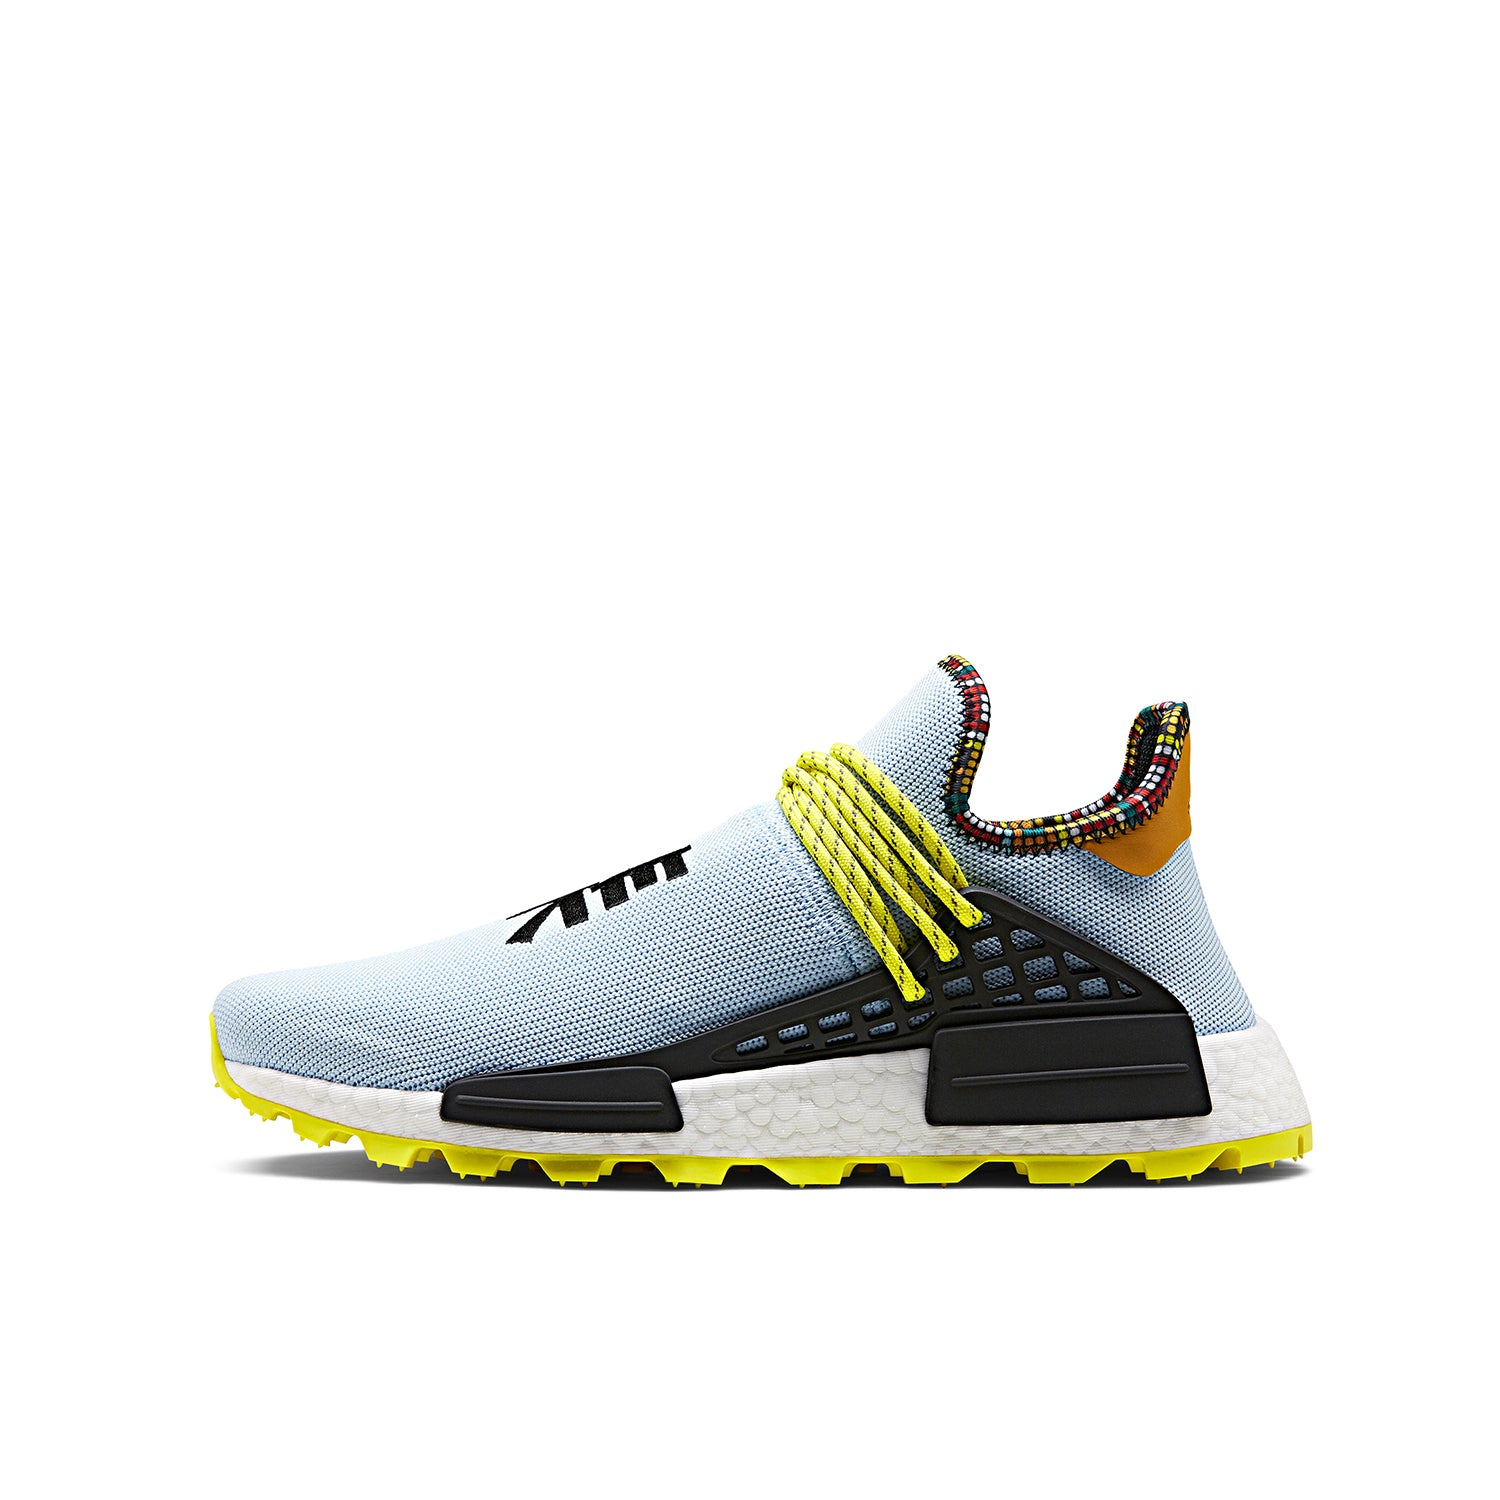 nouveau style da068 b367d adidas Originals x Pharrell Williams 'INSPIRATION' Solar HU NMD Aero Blue